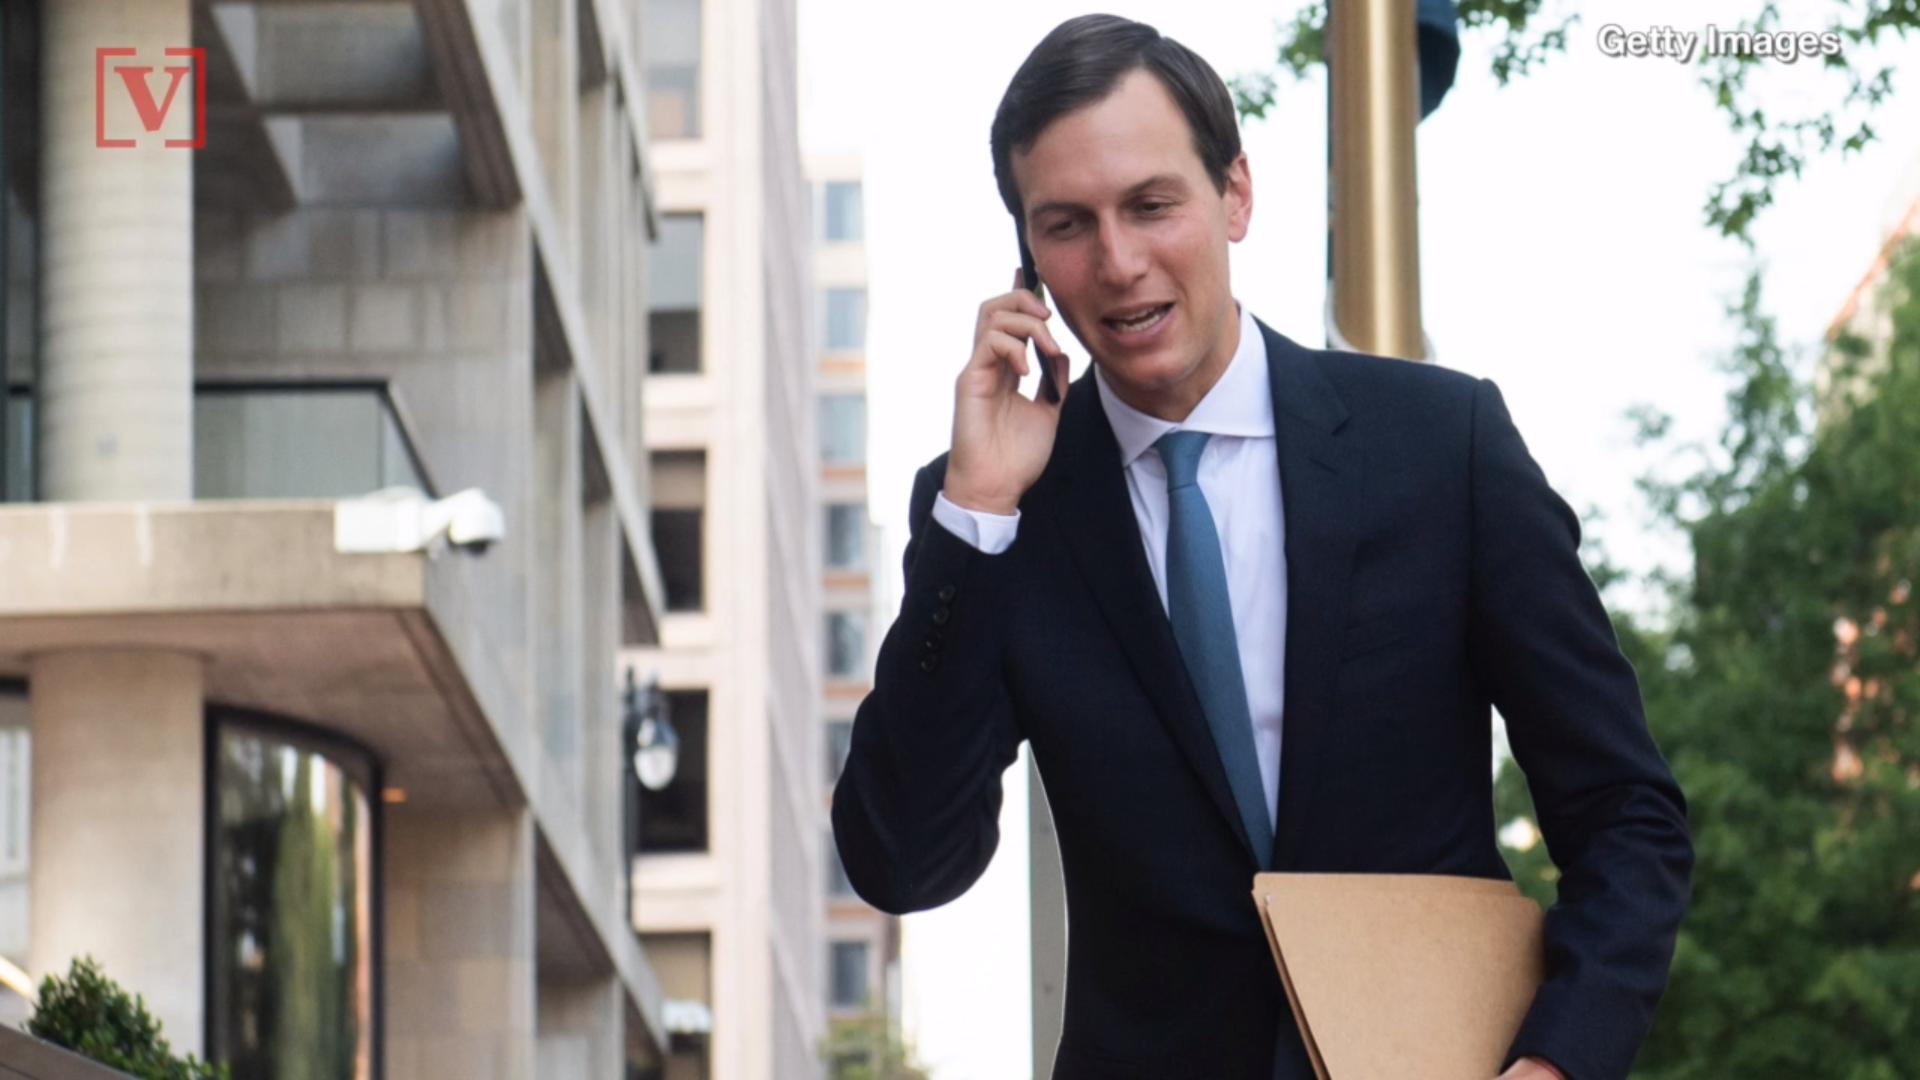 Politics - House Oversight Committee Questions Jared Kushner's Communications